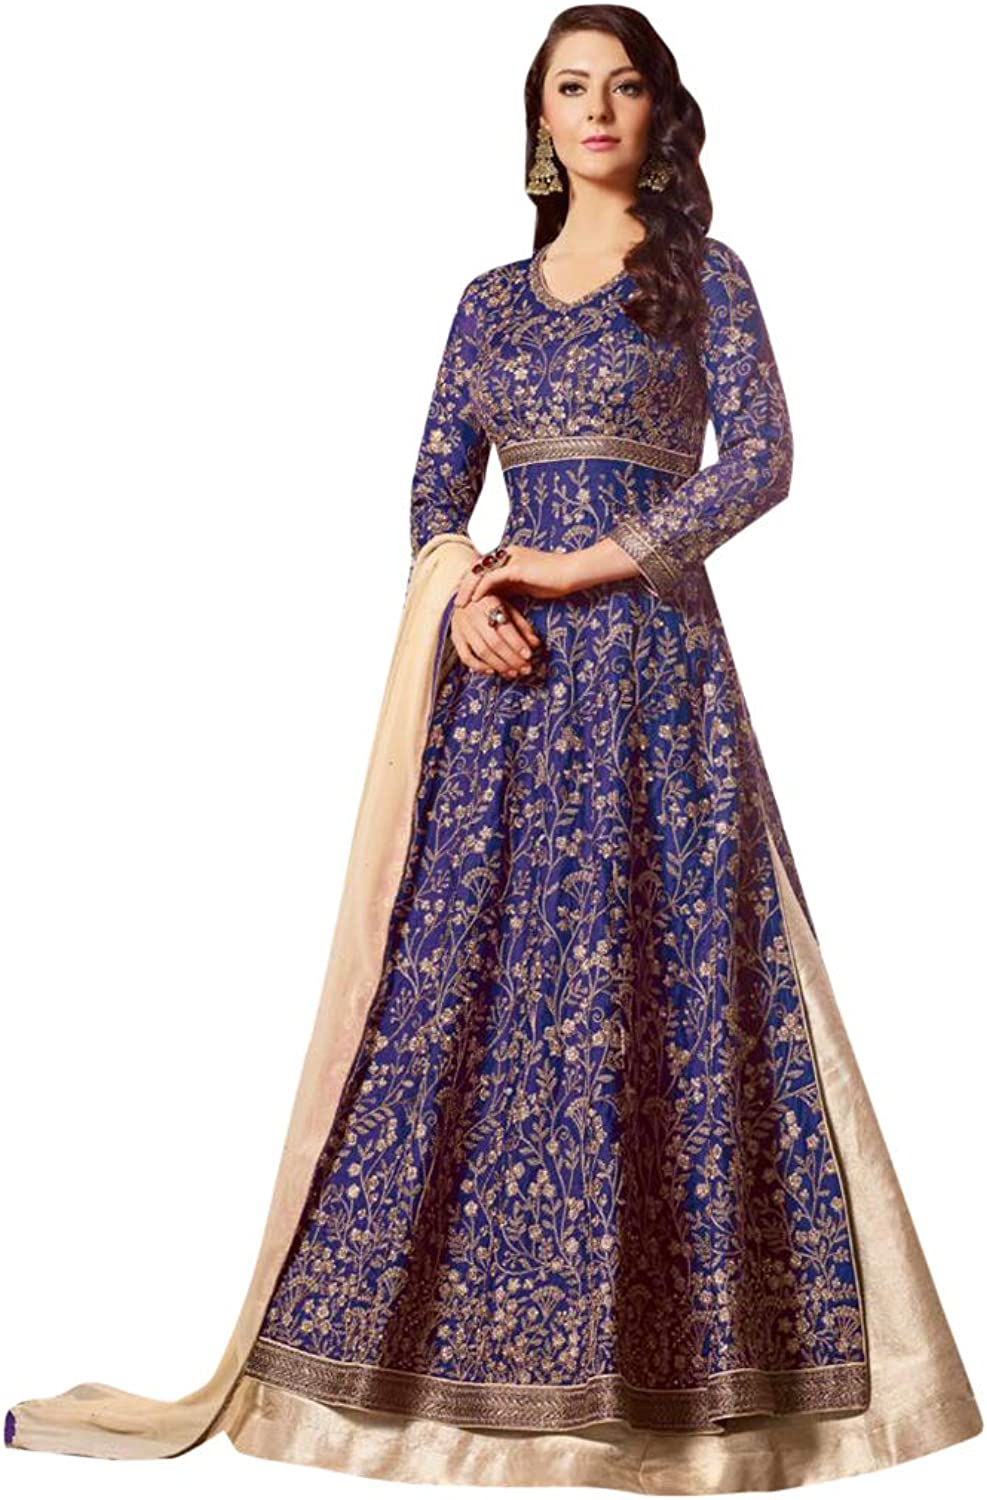 bluee Satin Heavy Embroidered Anarkali Skirt Suit for Women Indian Designer Party wear 7576